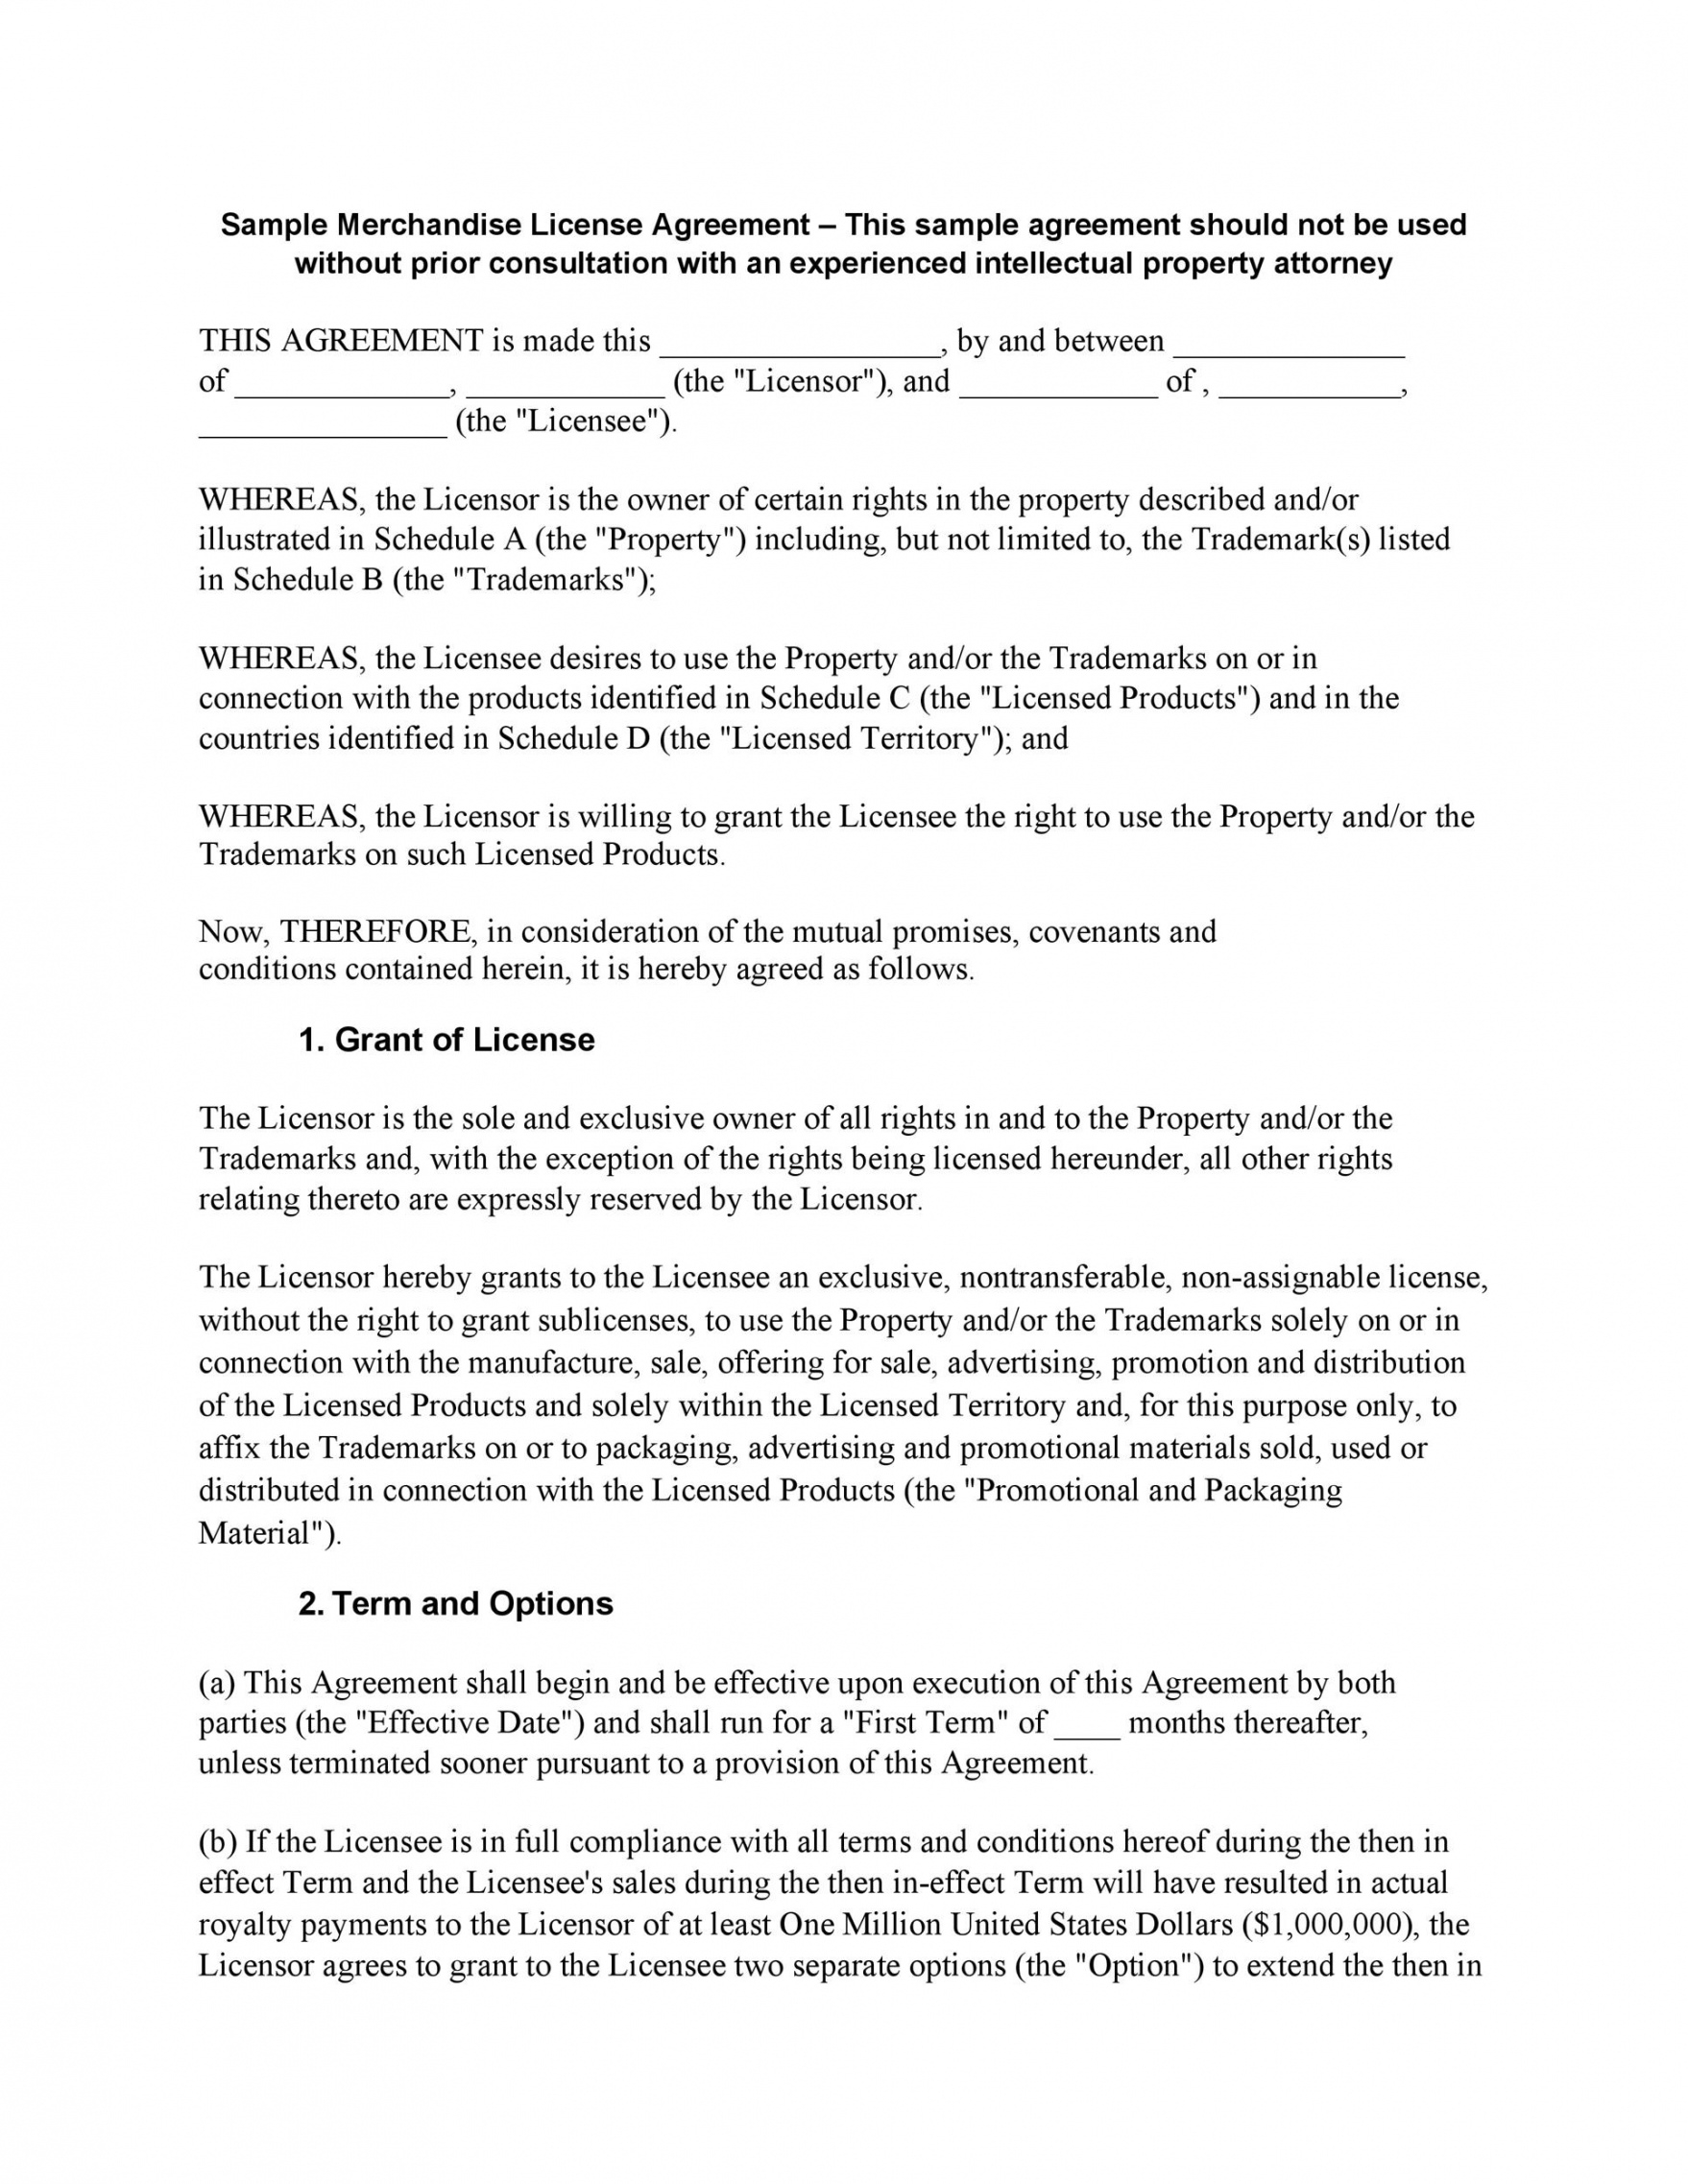 printable 50 professional license agreement templates ᐅ templatelab product license agreement template example